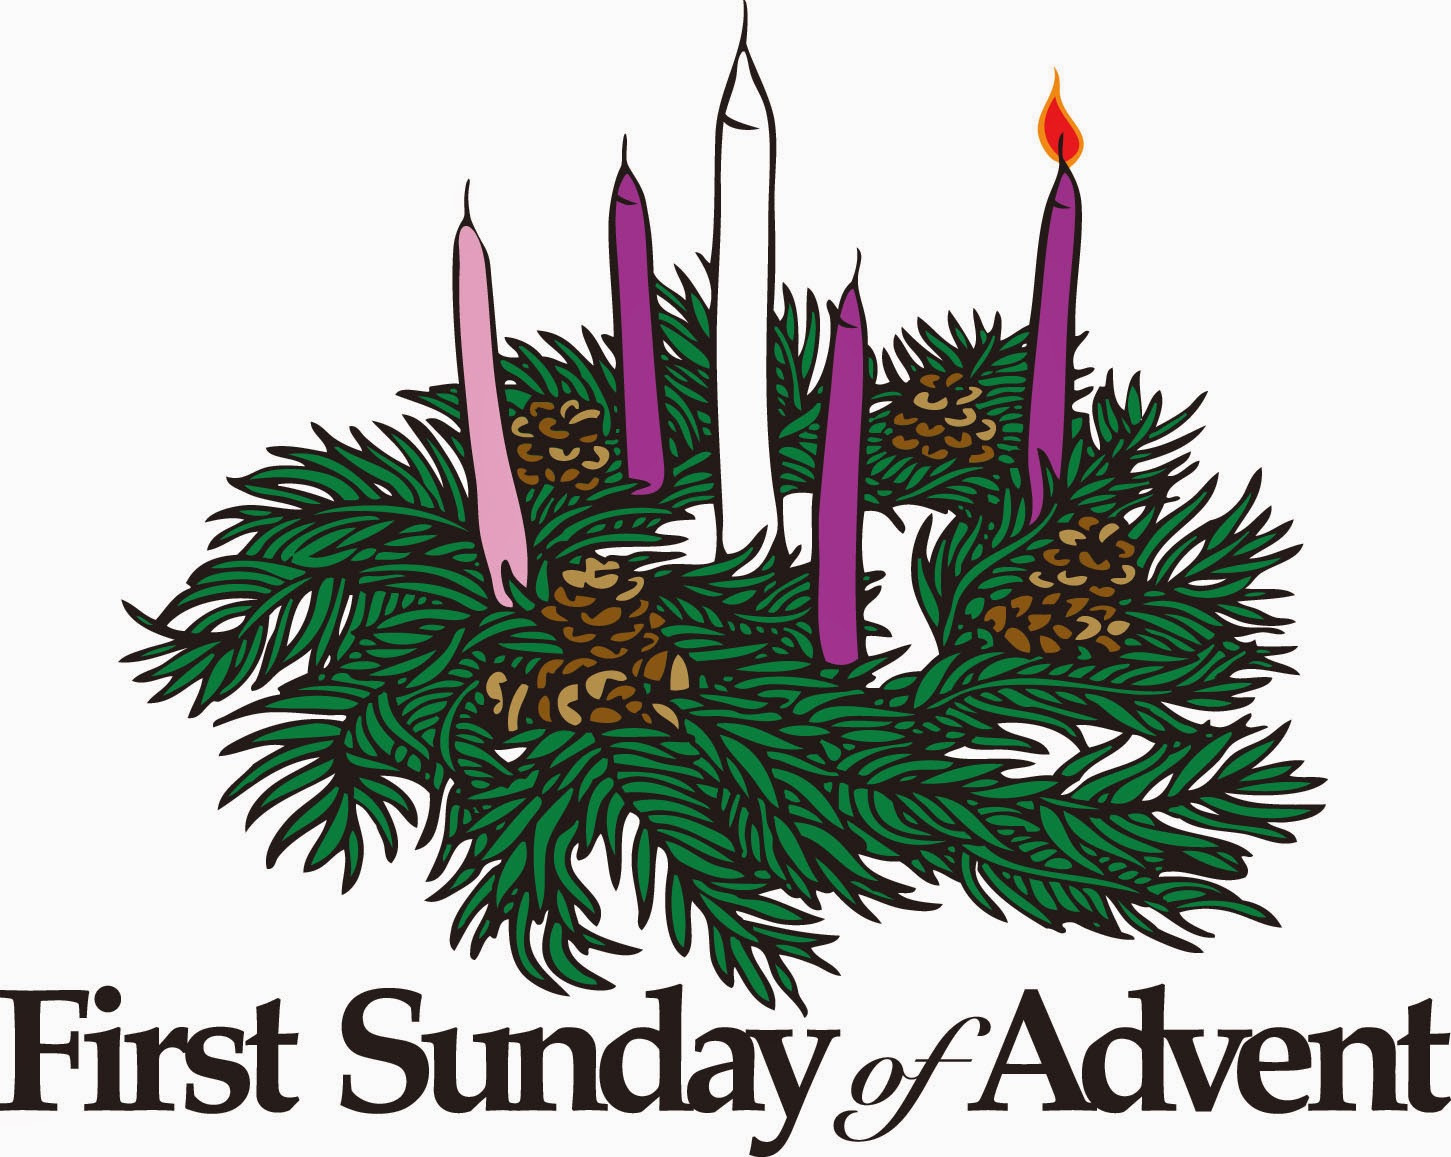 First sunday of advent 2014 clipart.